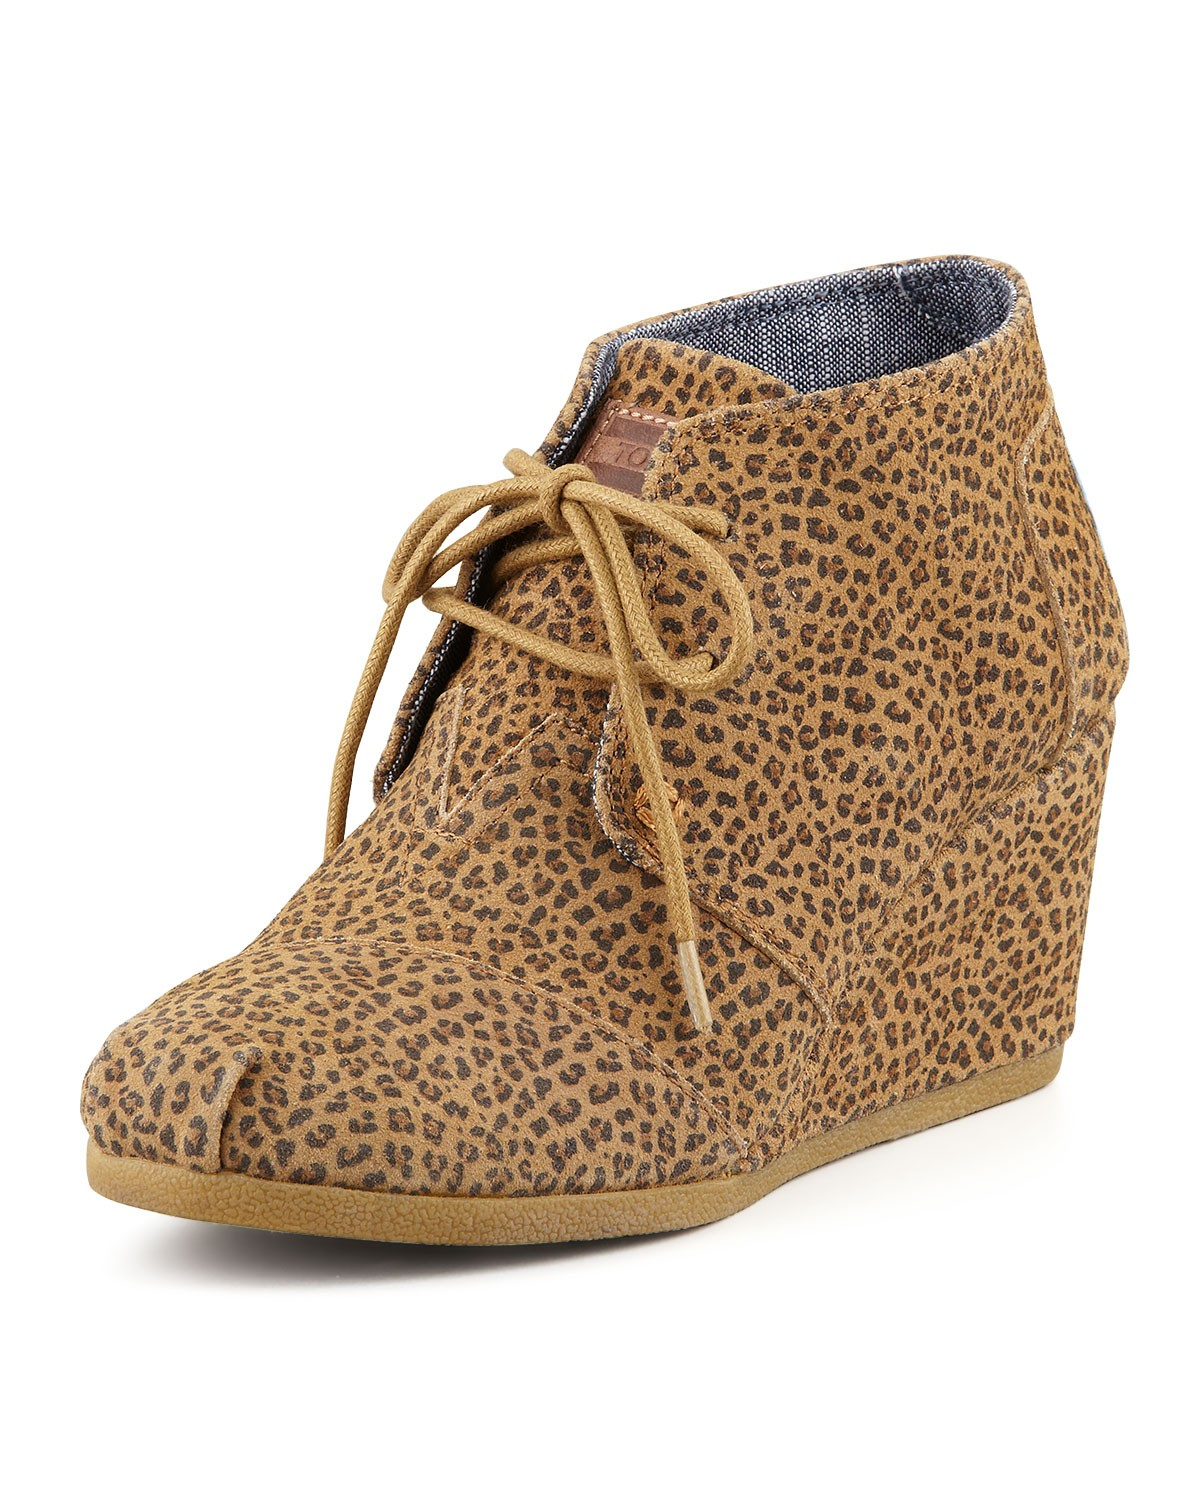 Cheetah-Print Wedge Desert Boot - TOMS - Brown multi (35.0B/5.0B)